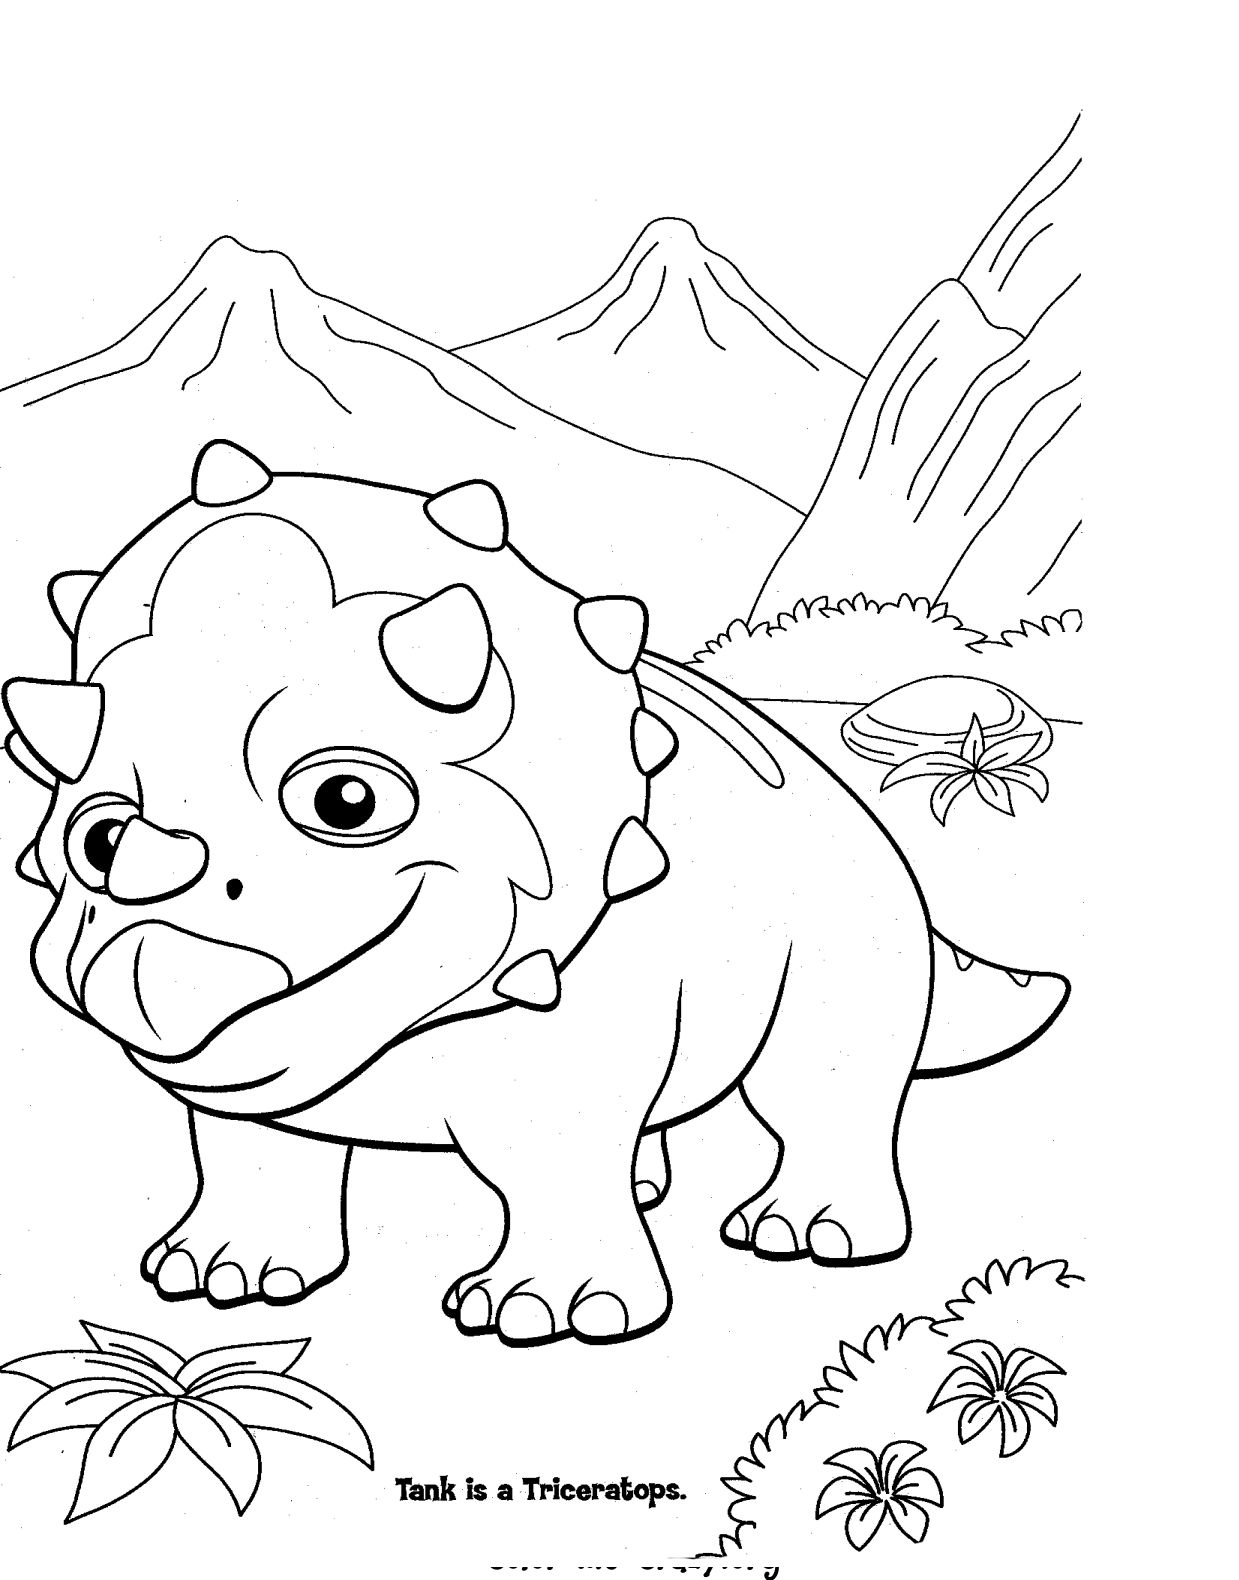 dino coloring page colormecrazyorg dinosaur train coloring pages dino page coloring